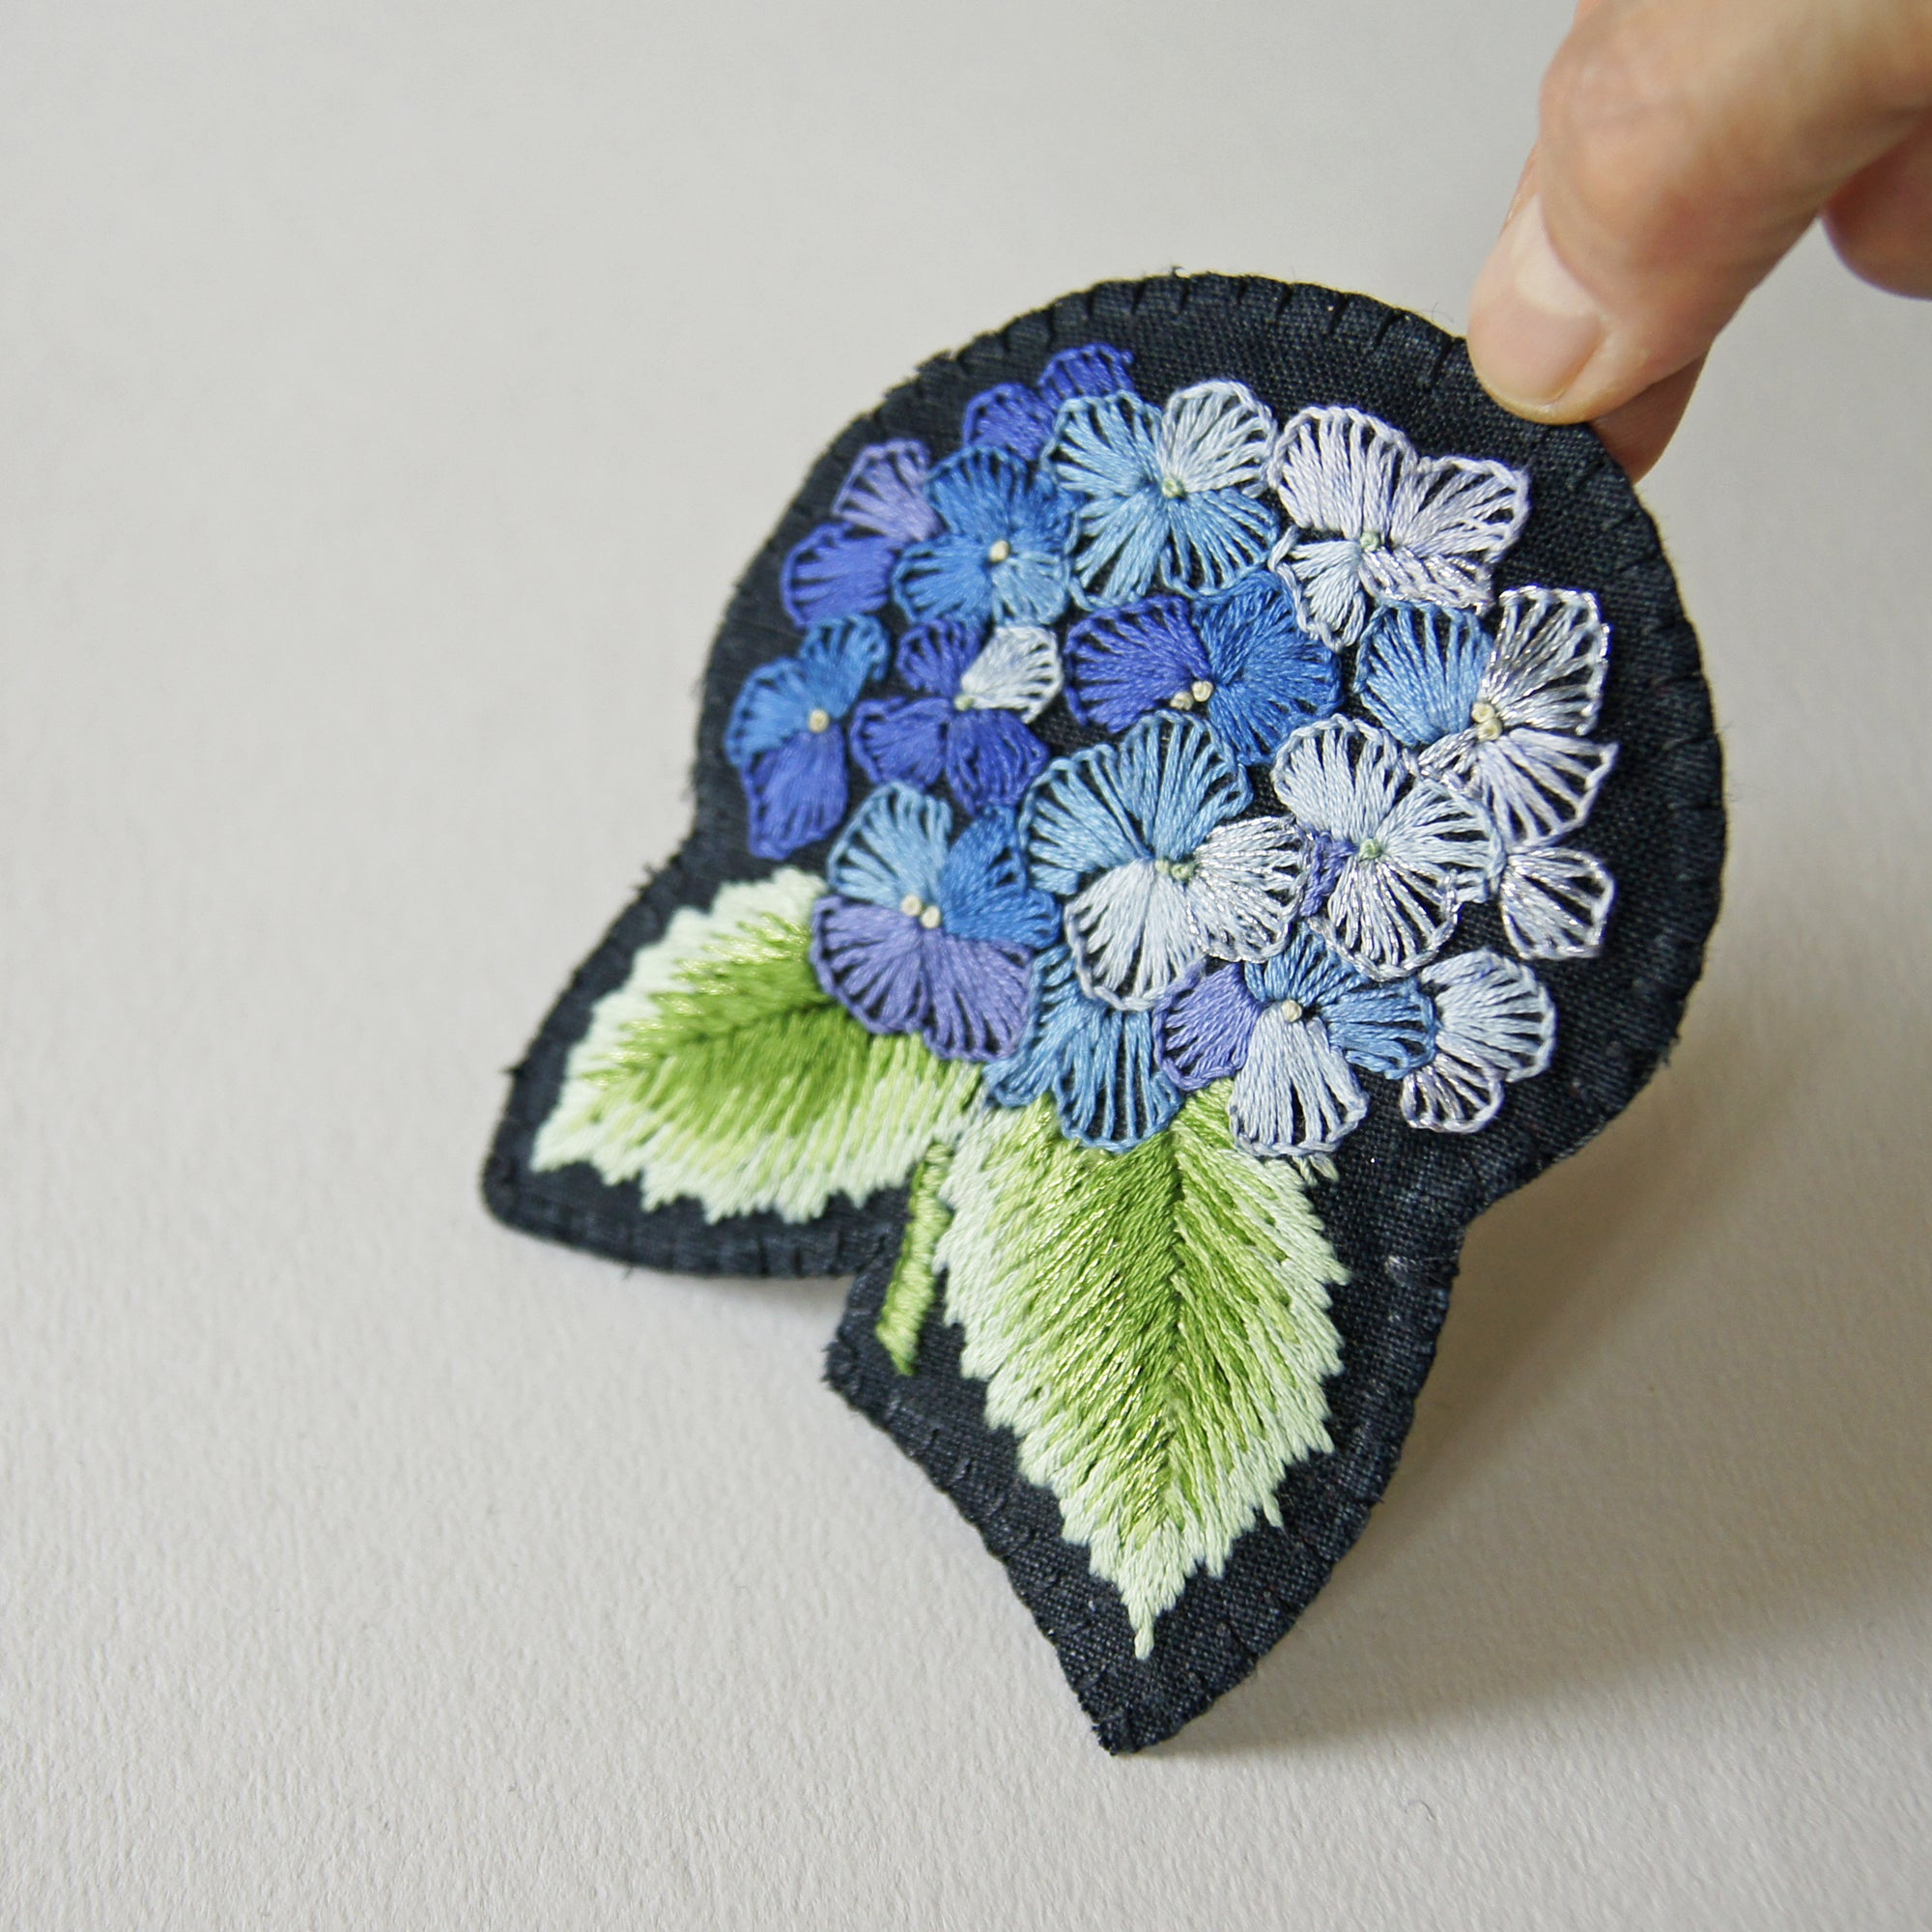 Tiny embroideries